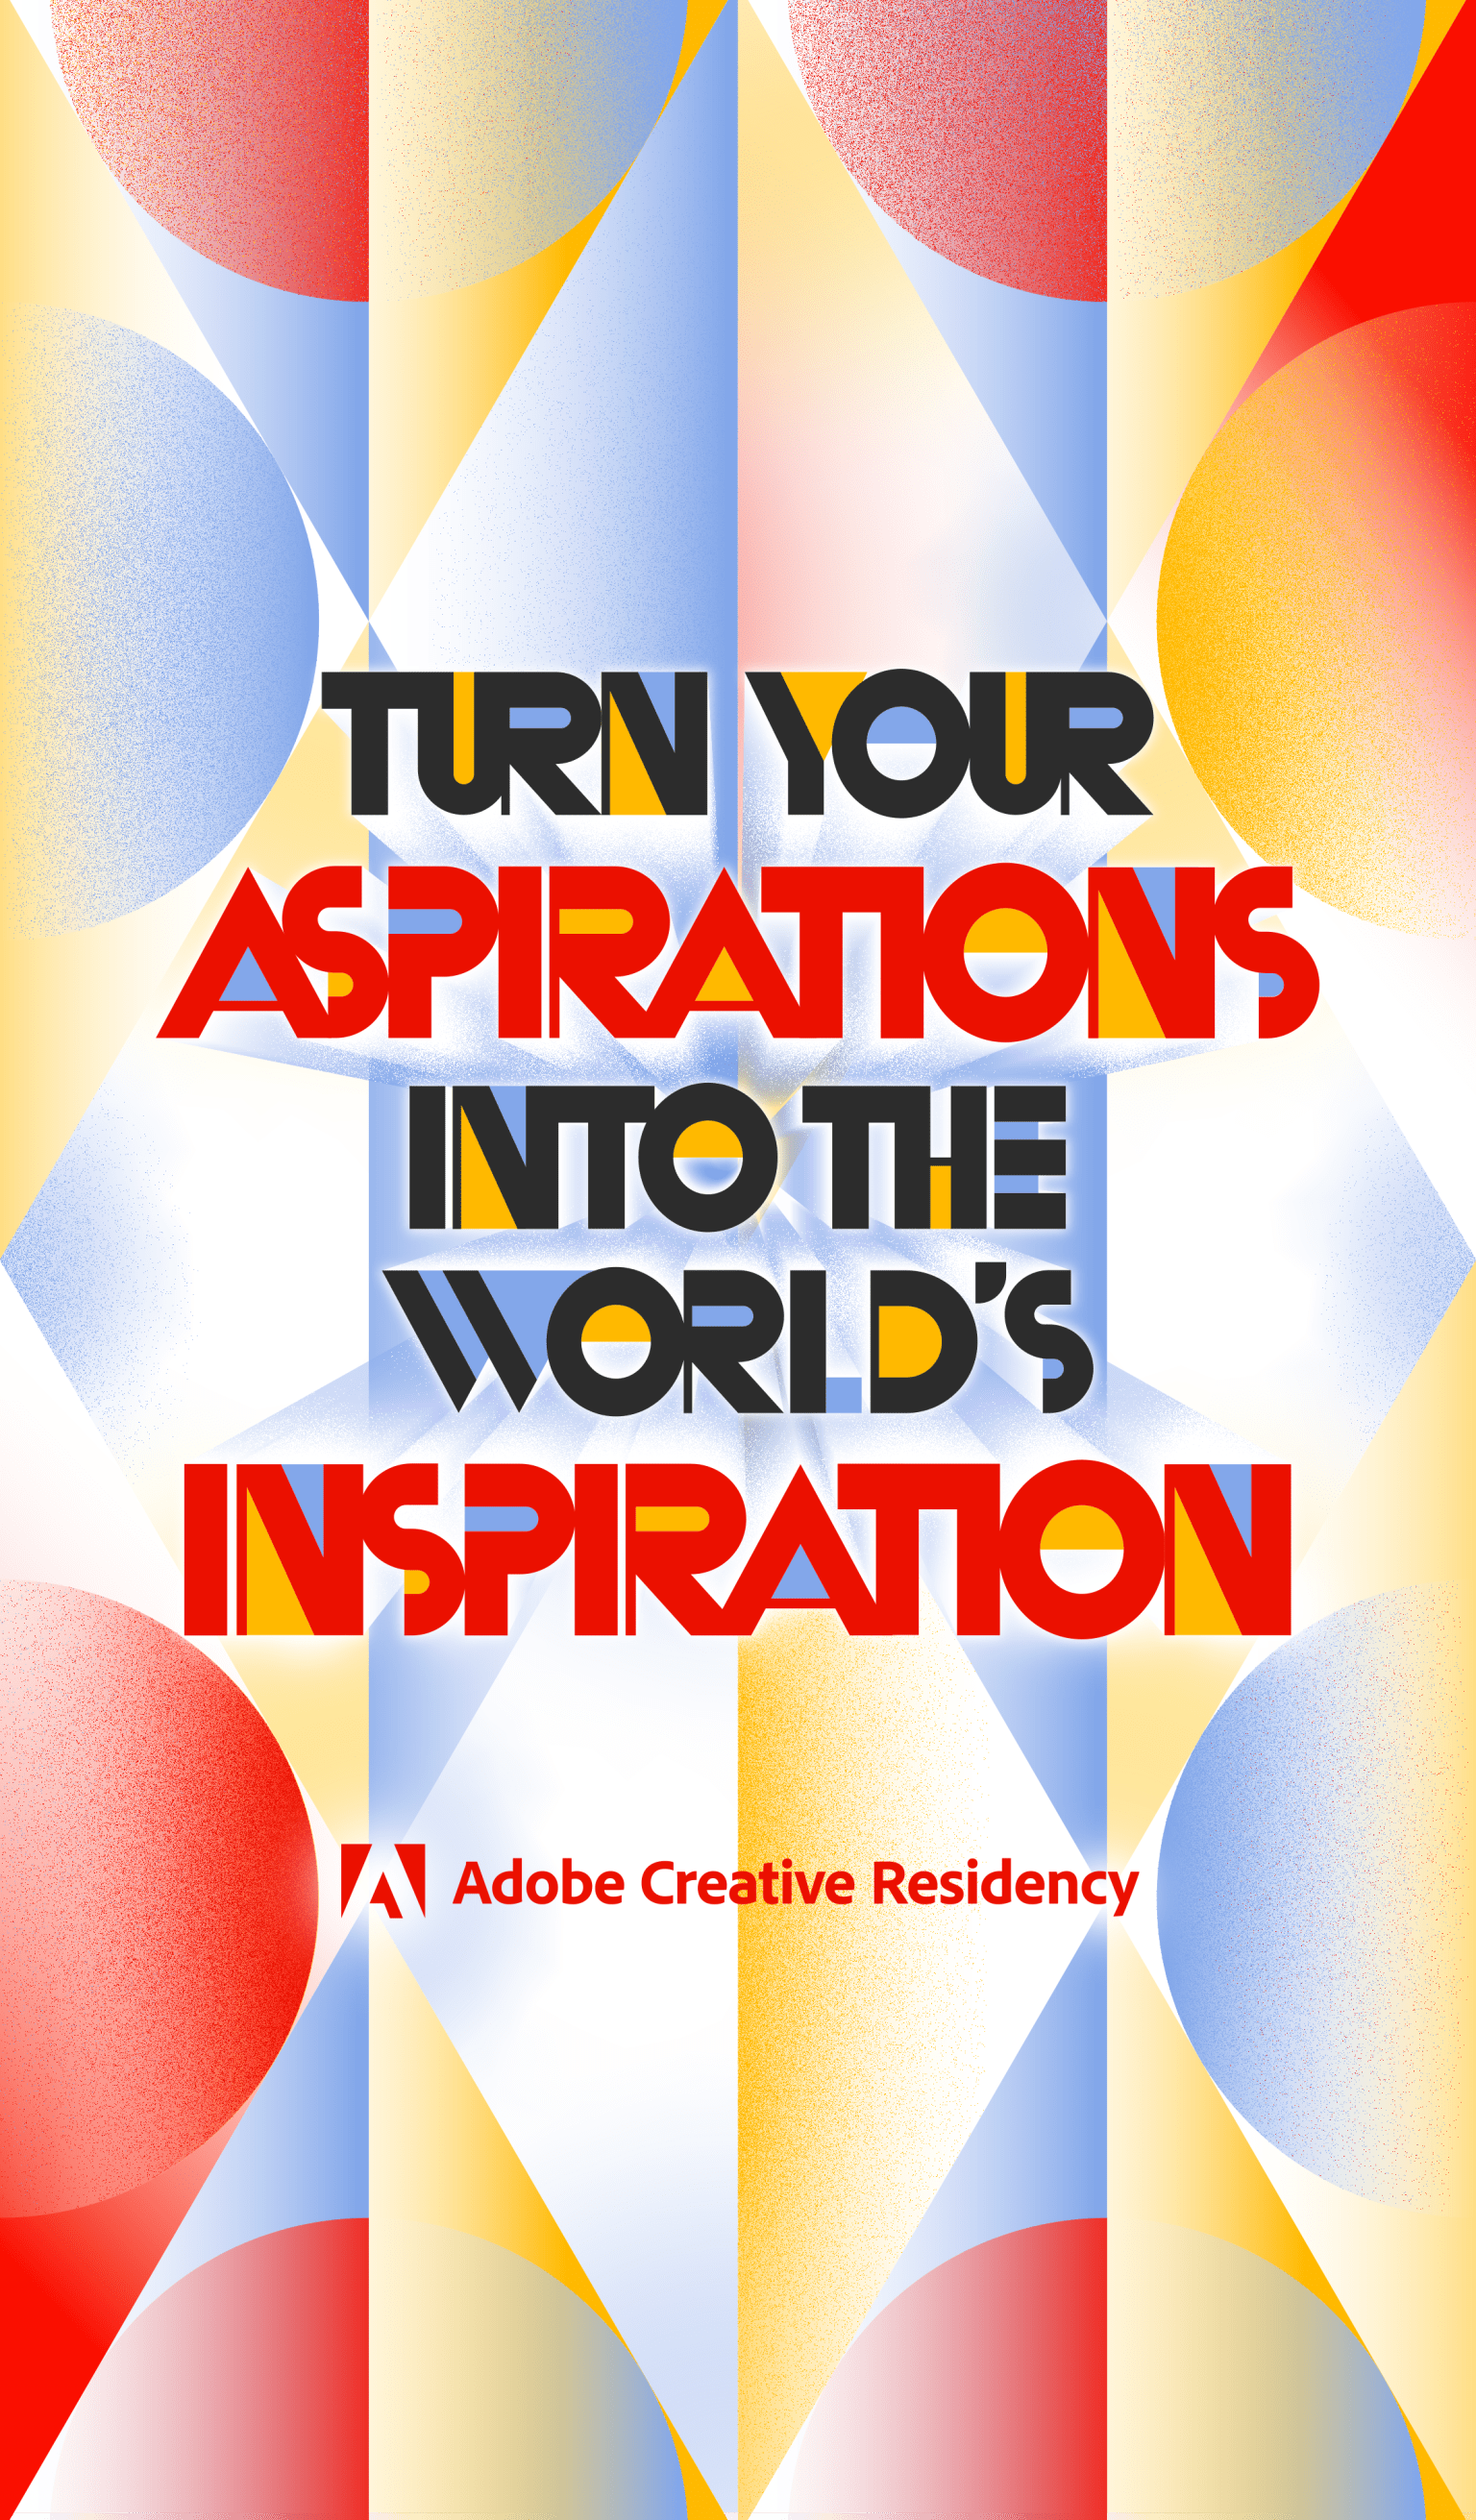 Adobe Supportive Sayings